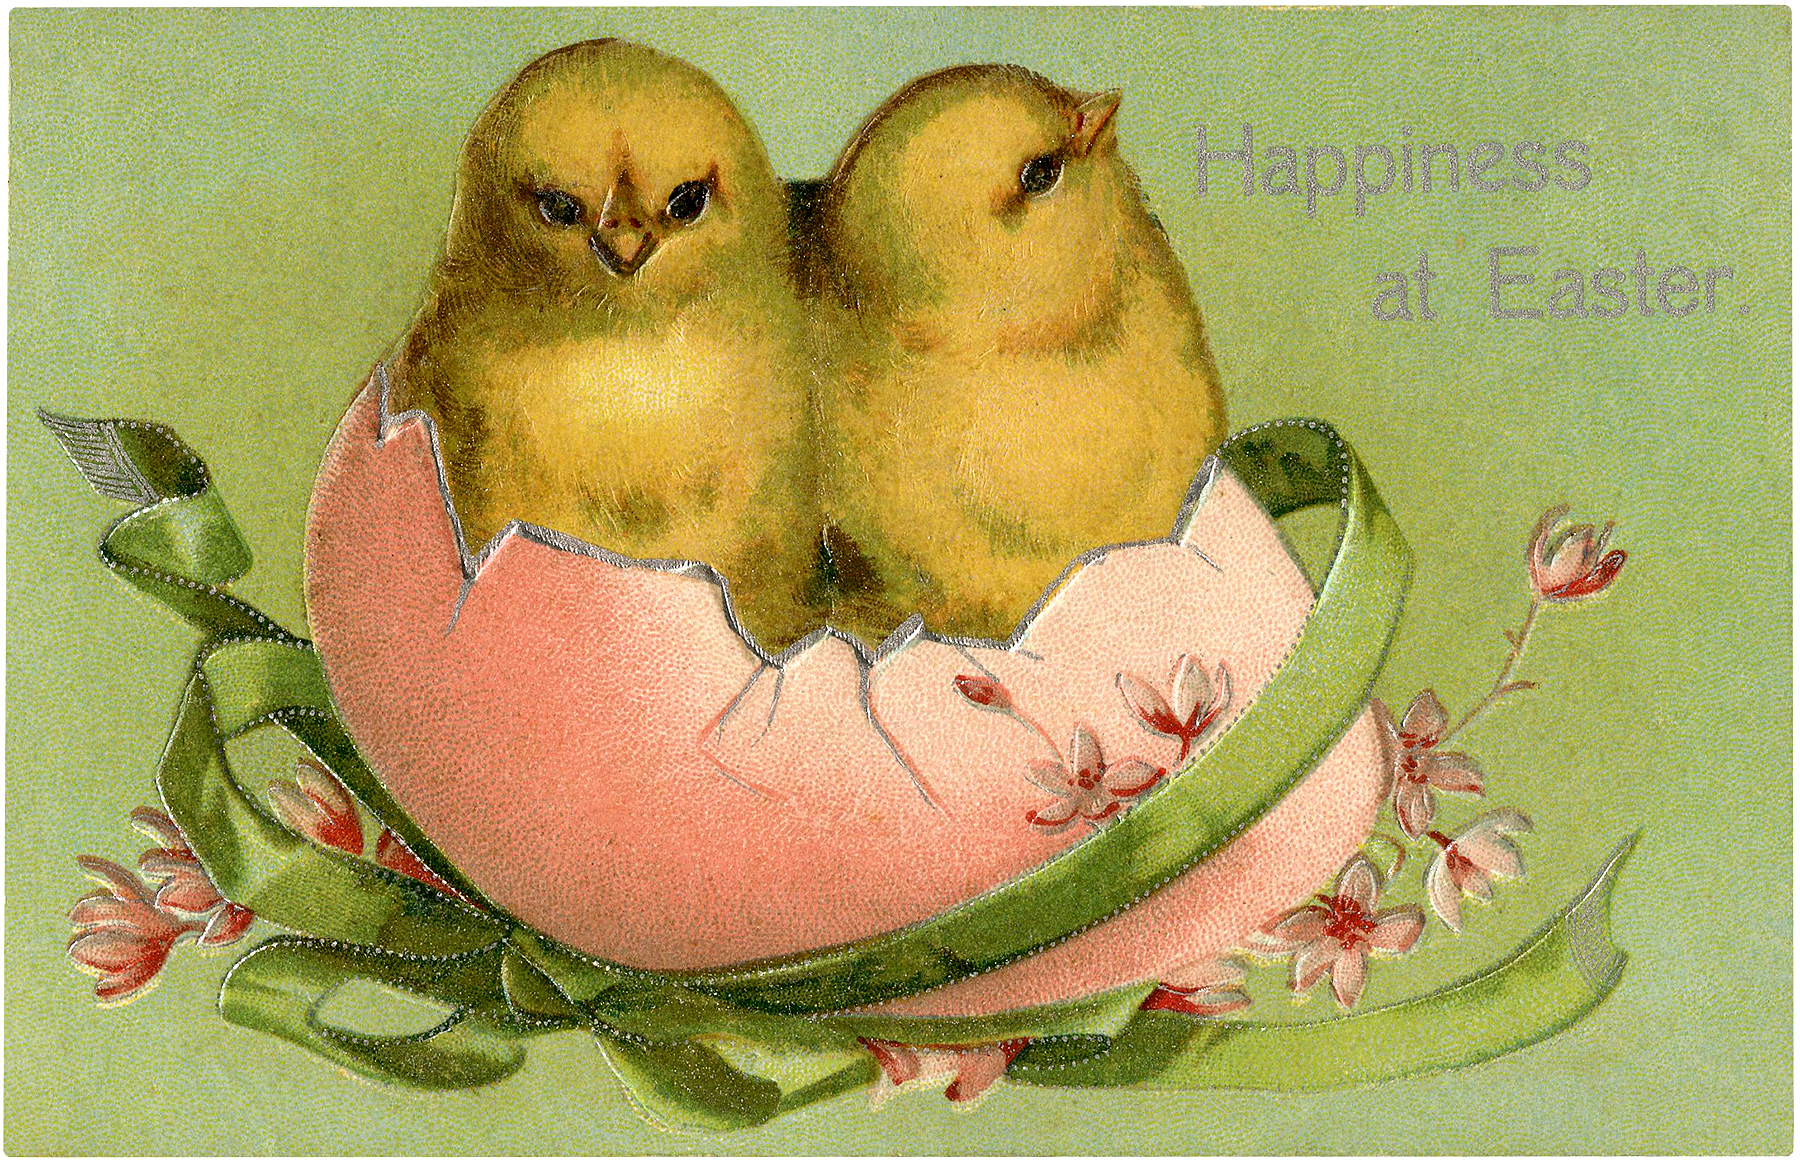 Easter Chicks Hatch Image